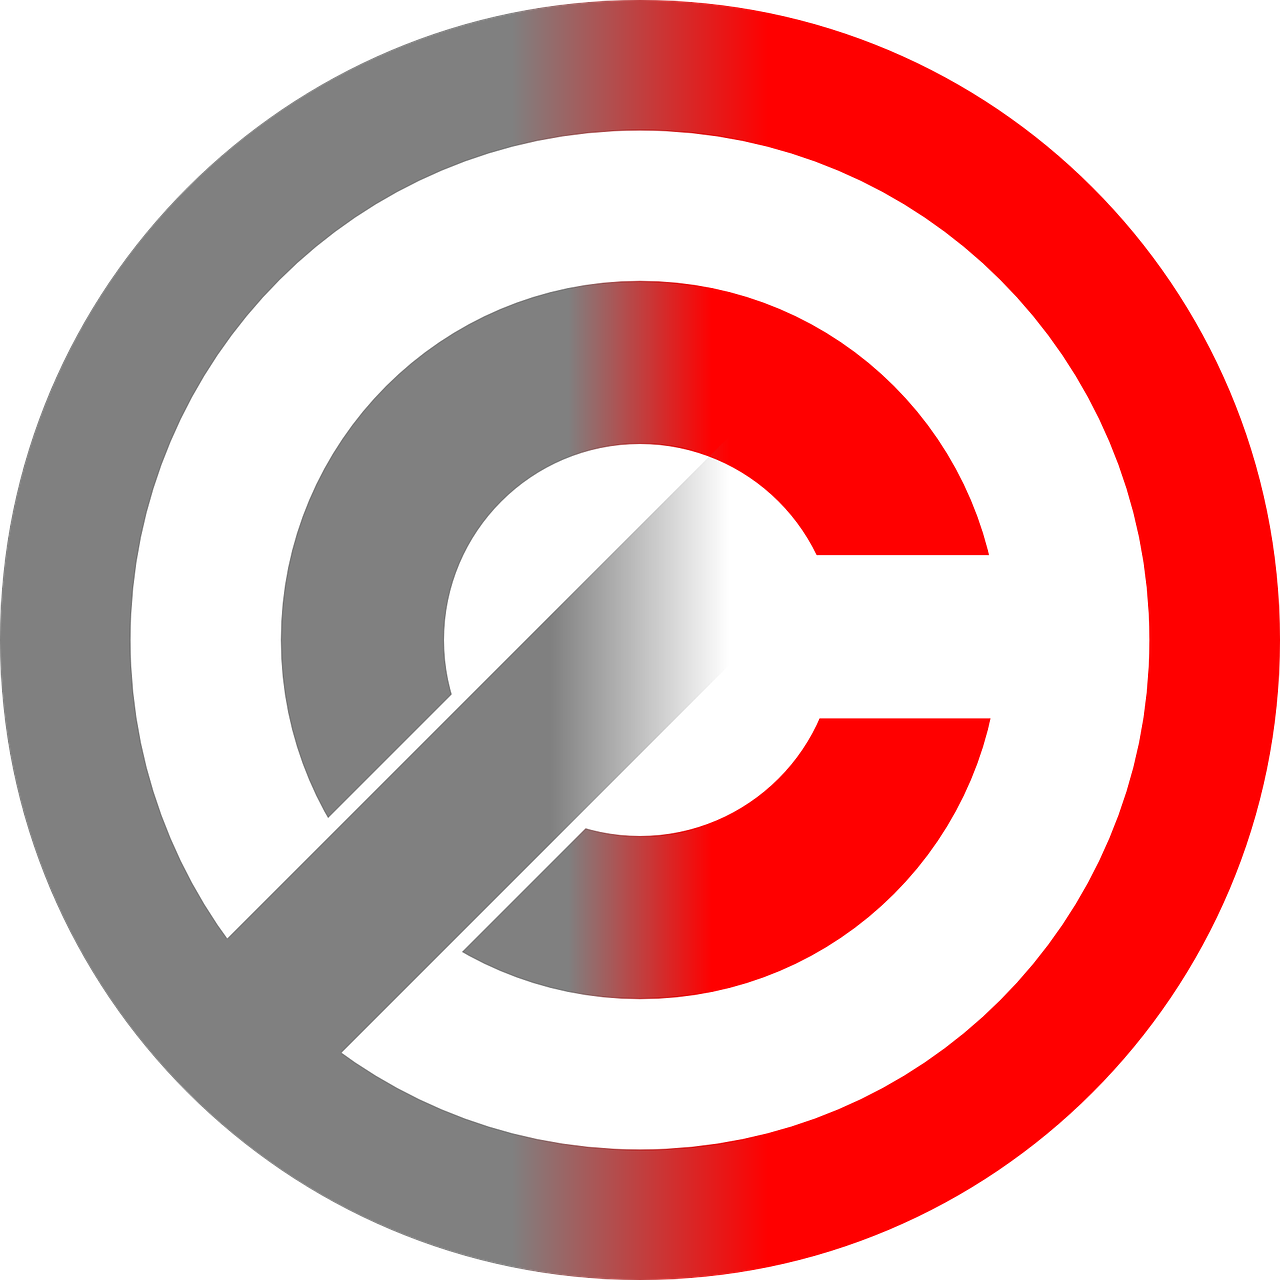 cc0 license icon free photo